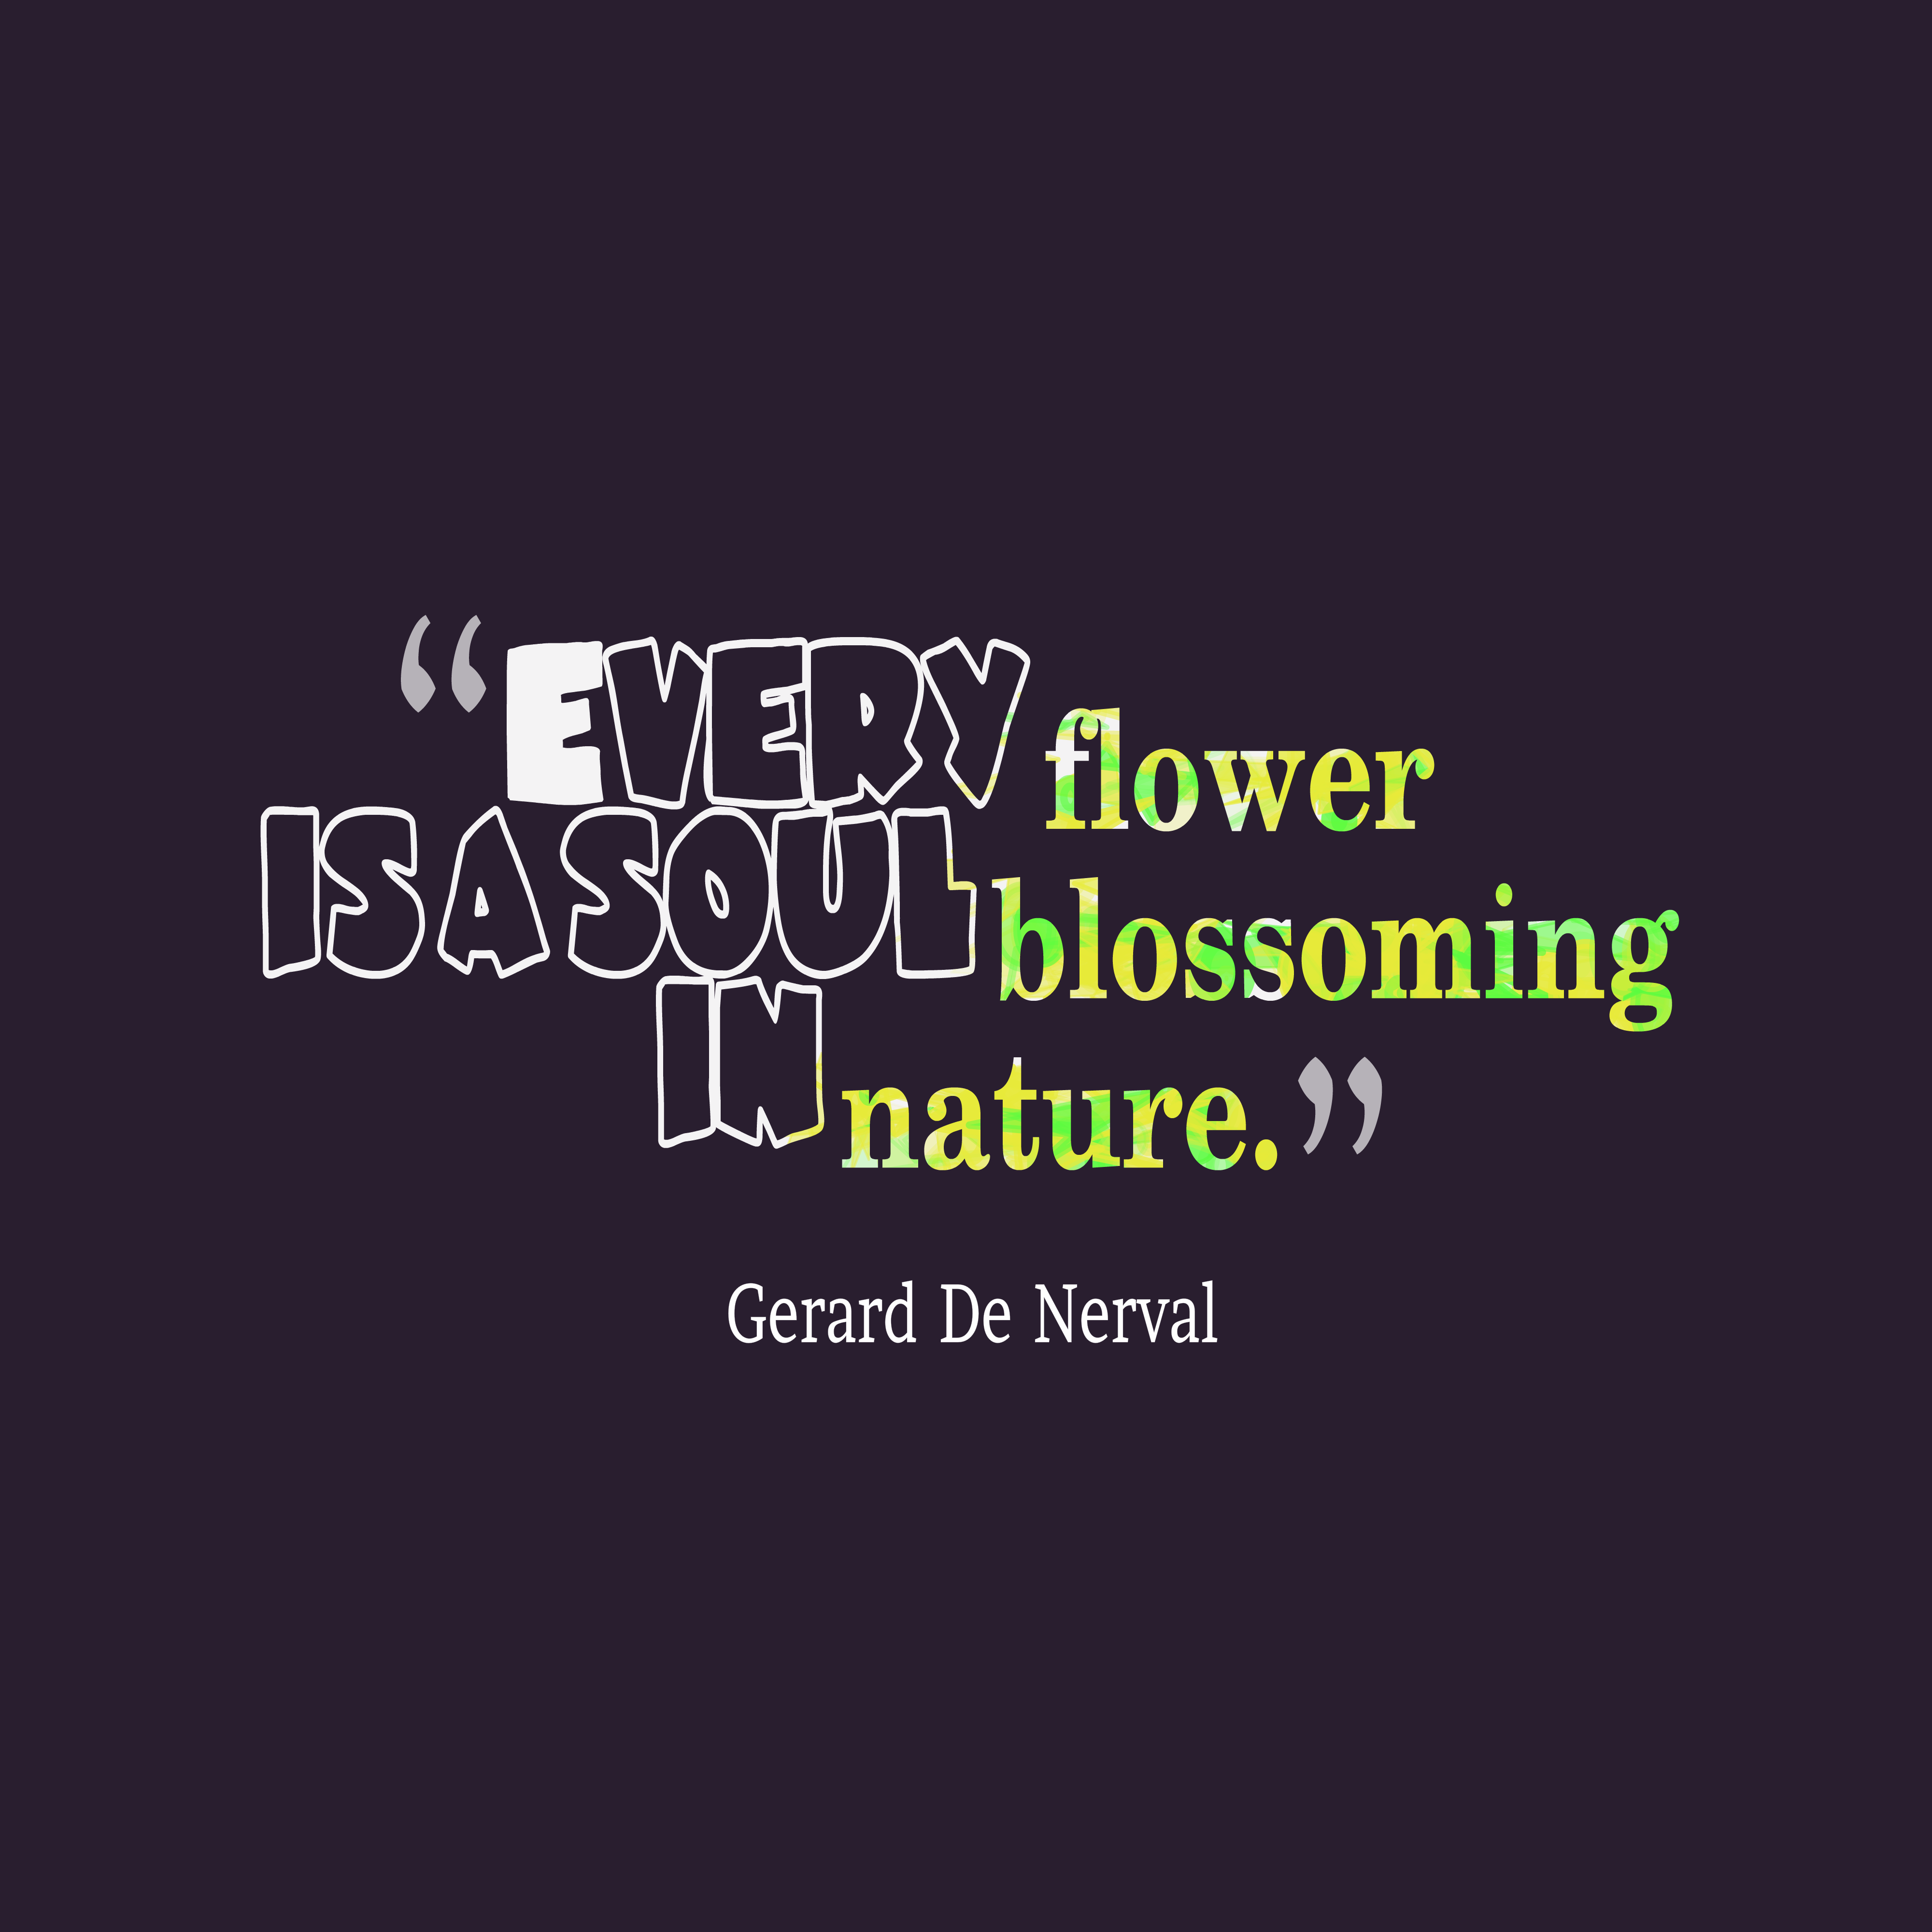 Quotes image of Every flower is a soul blossoming in nature.